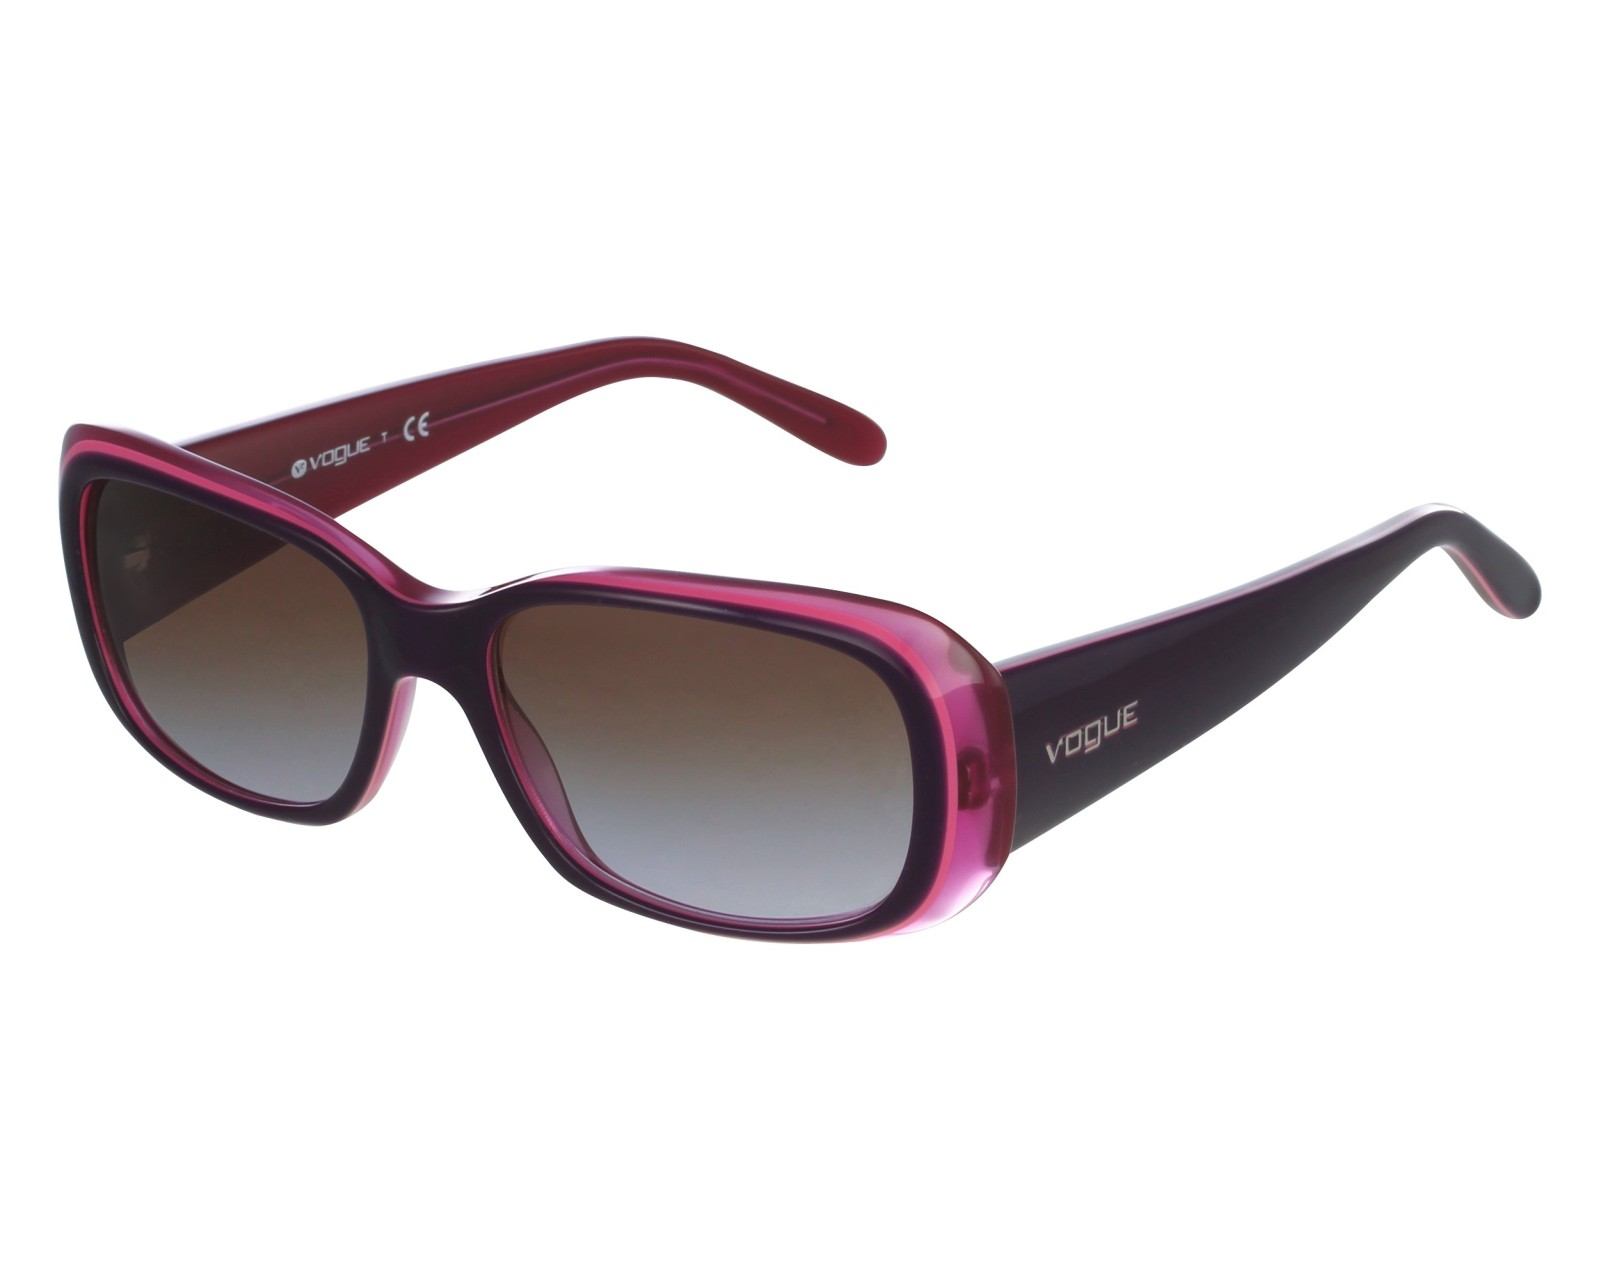 4084ab5b131 thumbnail Sunglasses Vogue VO-2606-S 2286 68 - Purple Pink front view